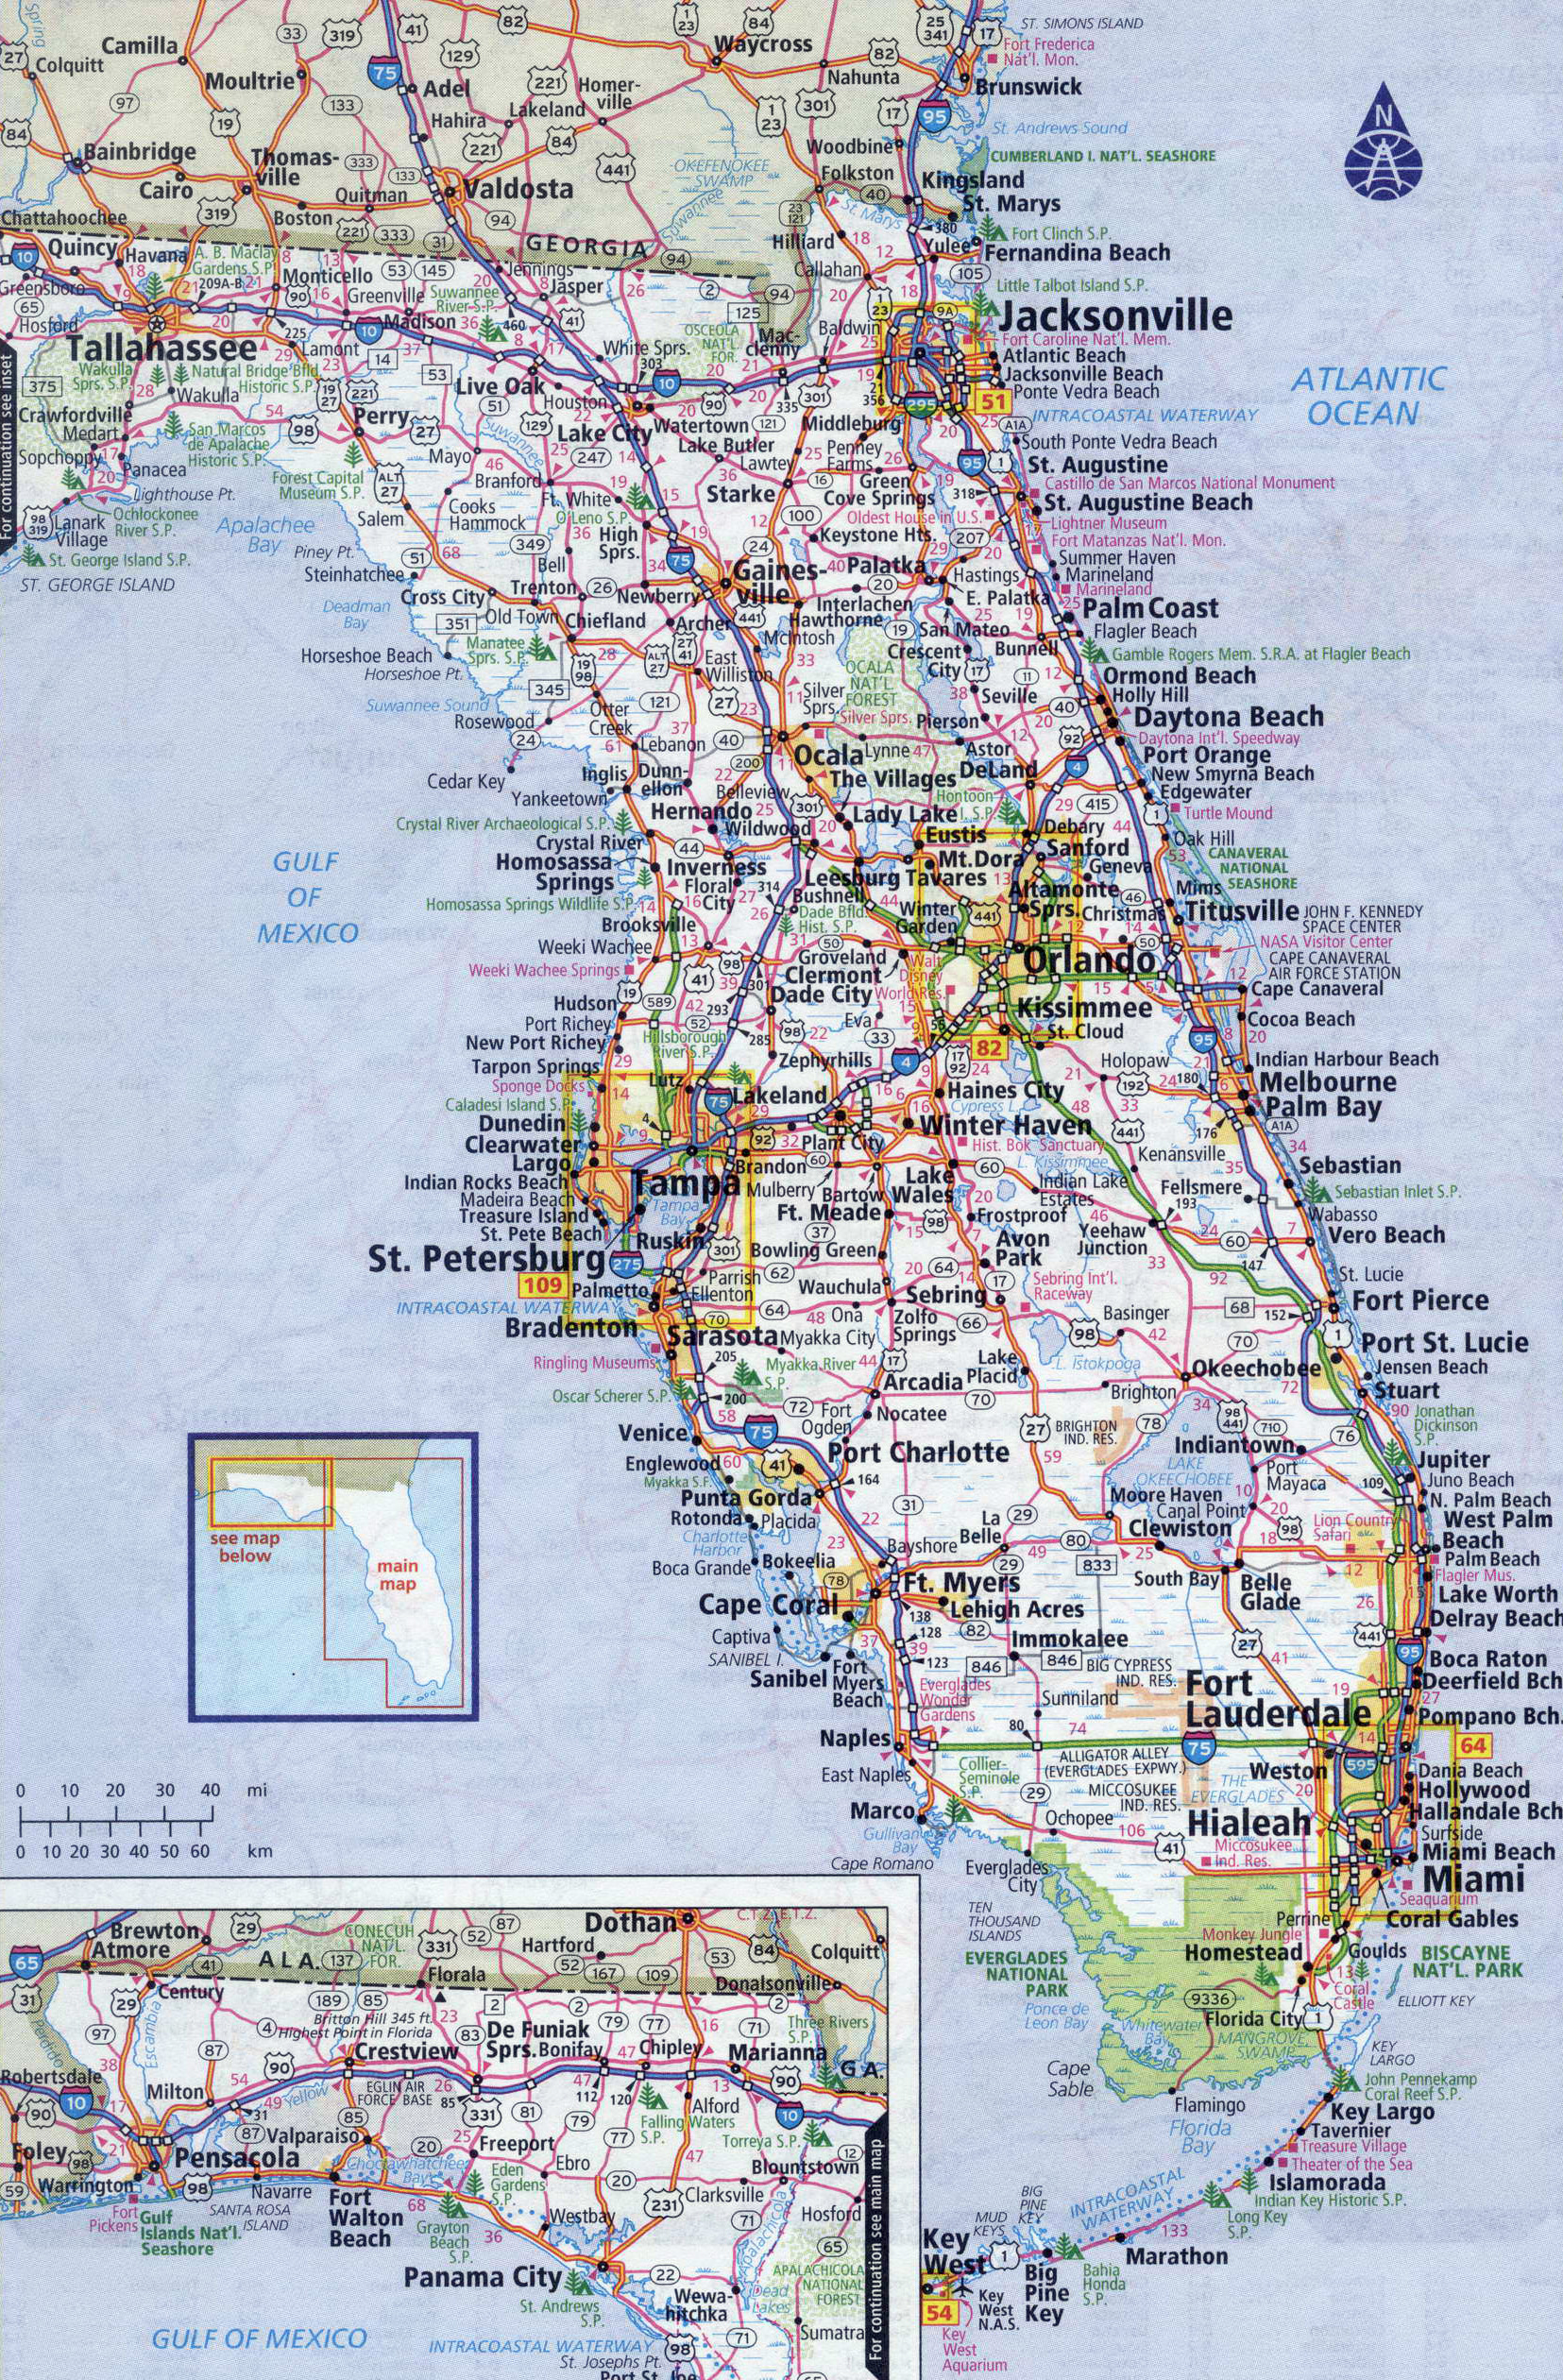 Www Map Of Florida.Large Detailed Roads And Highways Map Of Florida State With All